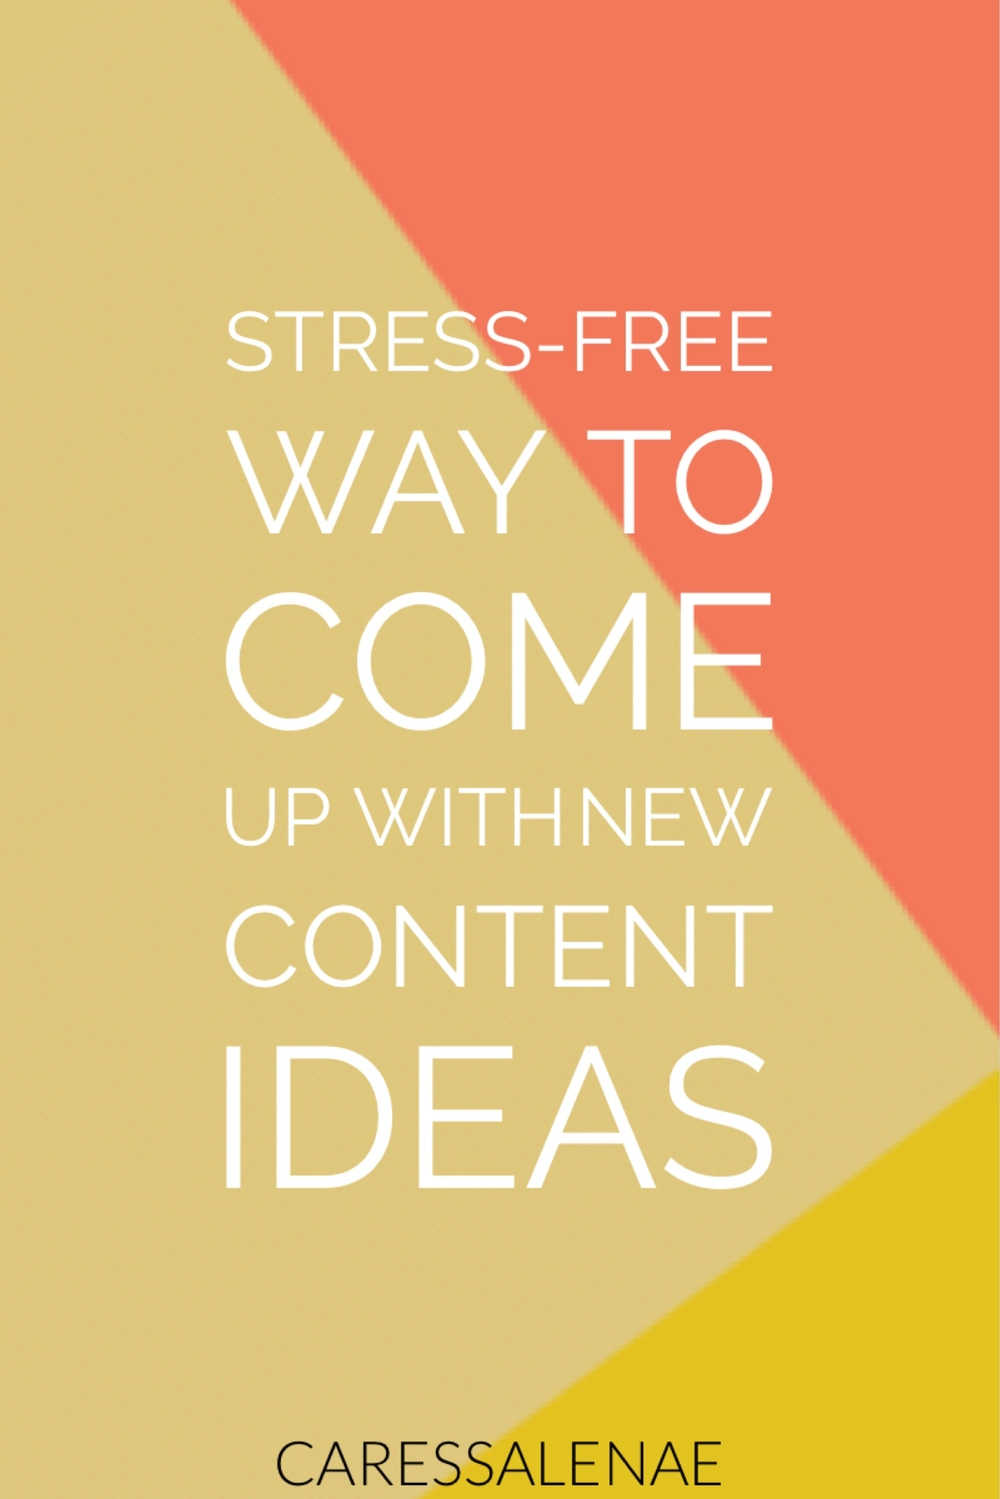 Creating content can be simple or forever a headache. Let me help you take out the stress with my best tip for creating content the stress-free way. via @CaressaLenae